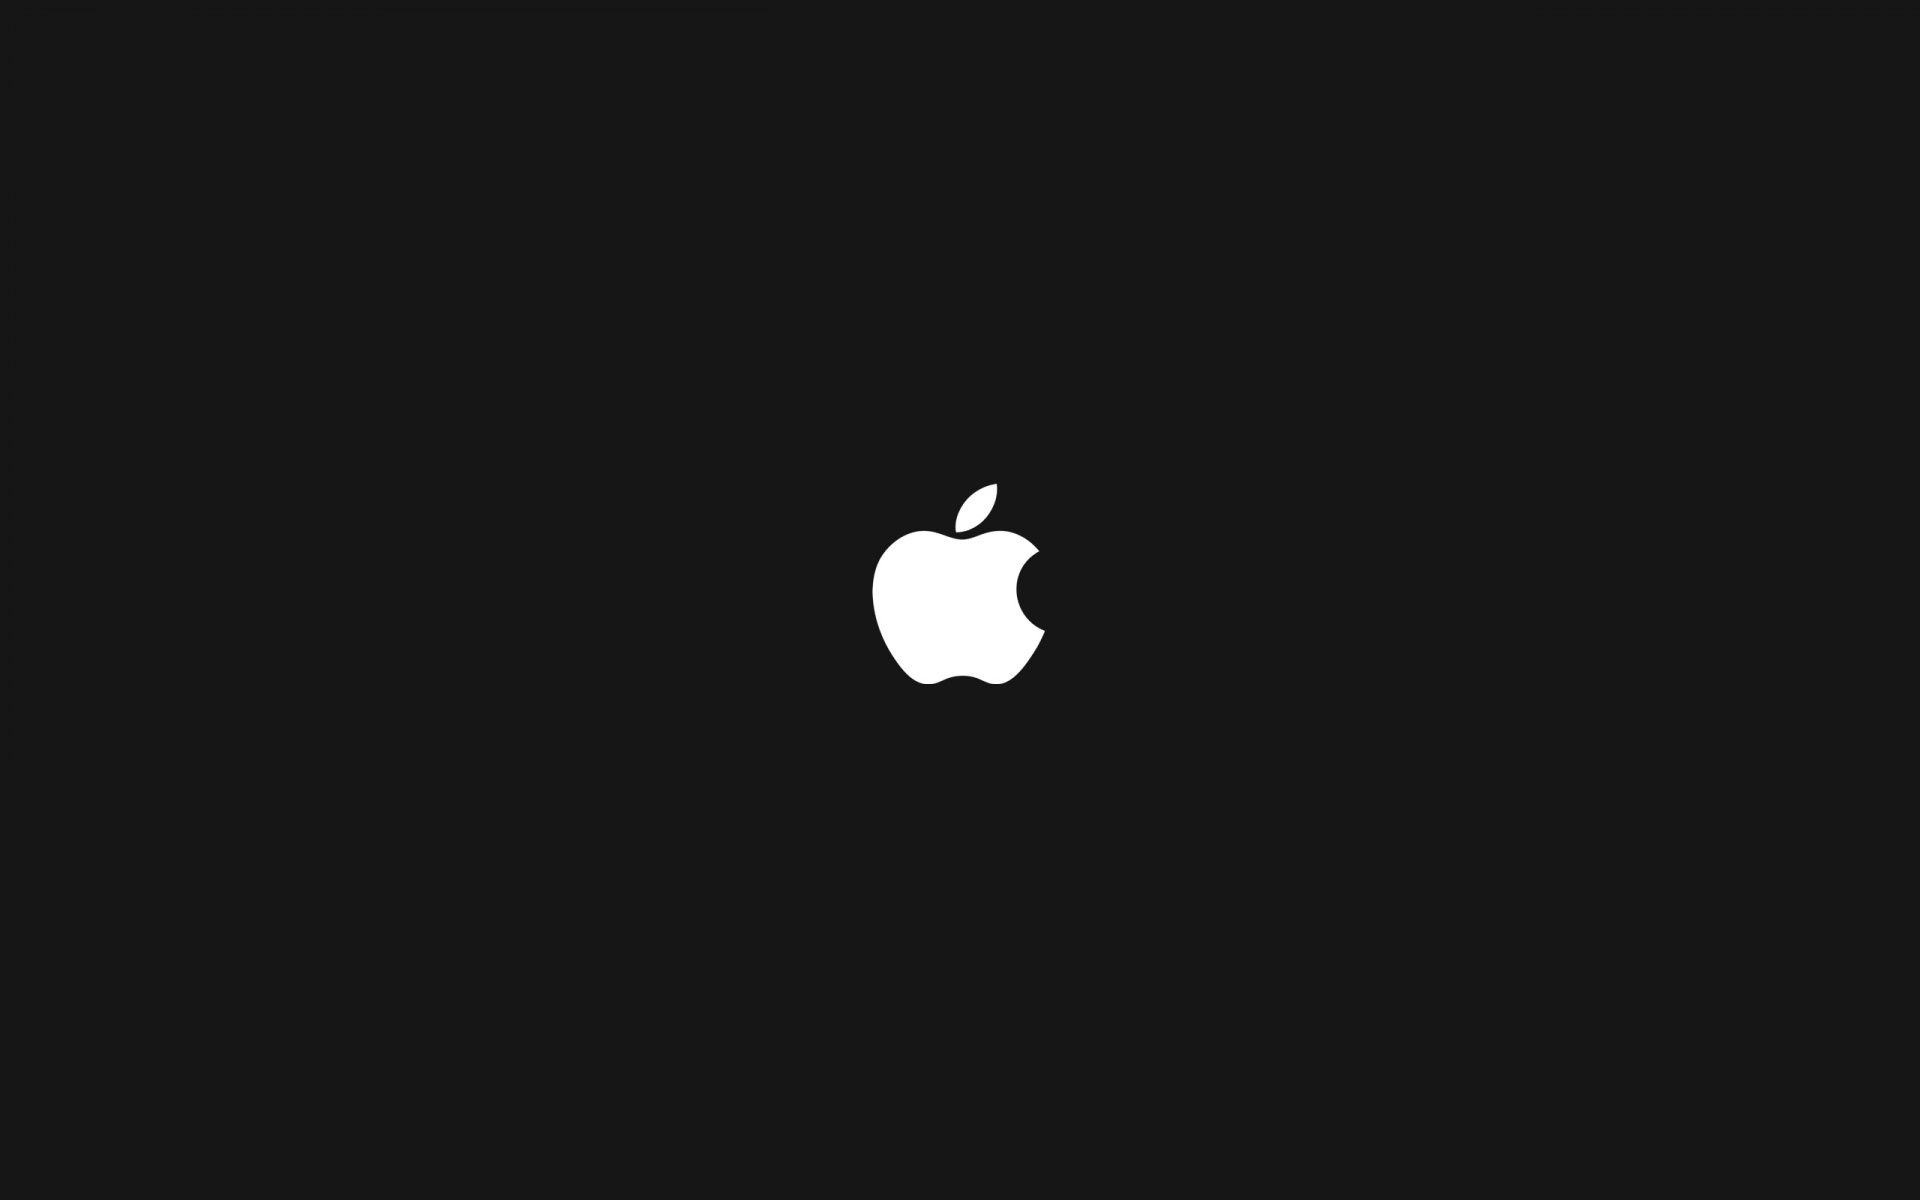 White Apple In 2020 Apple Logo Wallpaper Apple Wallpaper Apple Wallpaper Full Hd